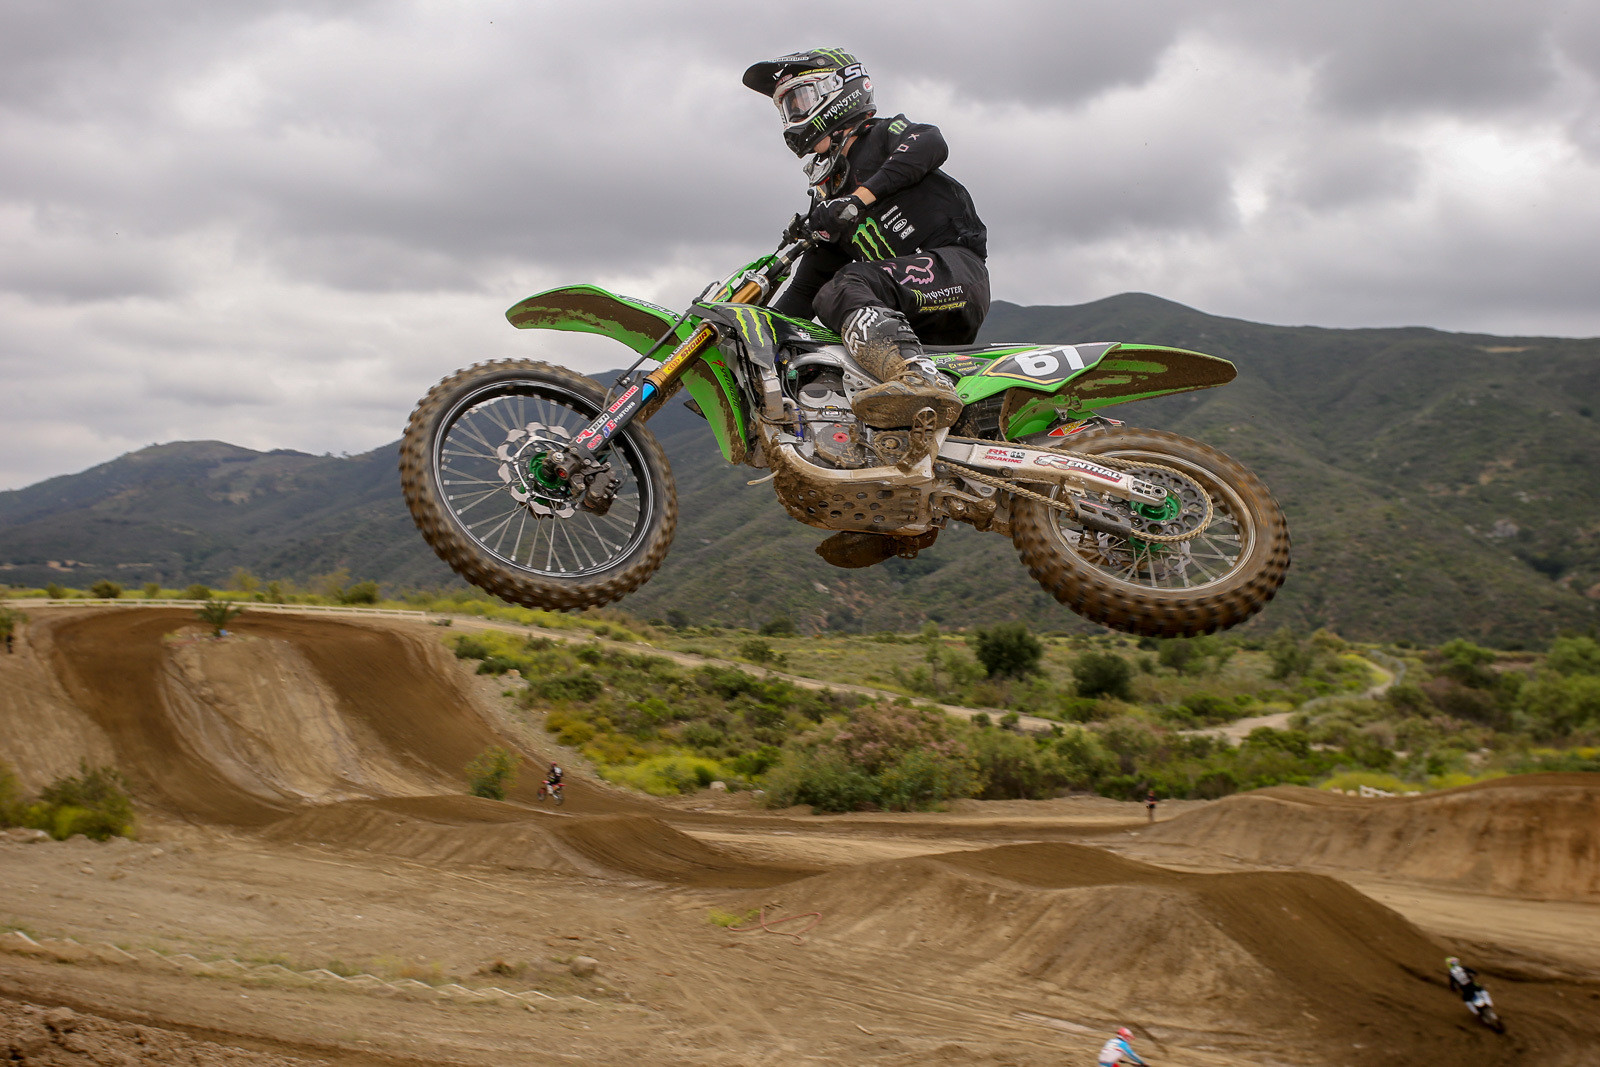 Garrett Marchbanks was on hand to get ready for his sophomore season. As usual, his coach, Ivan Tedesco, was also doing some testing for the Monster Energy Pro Circuit Kawasaki squad.